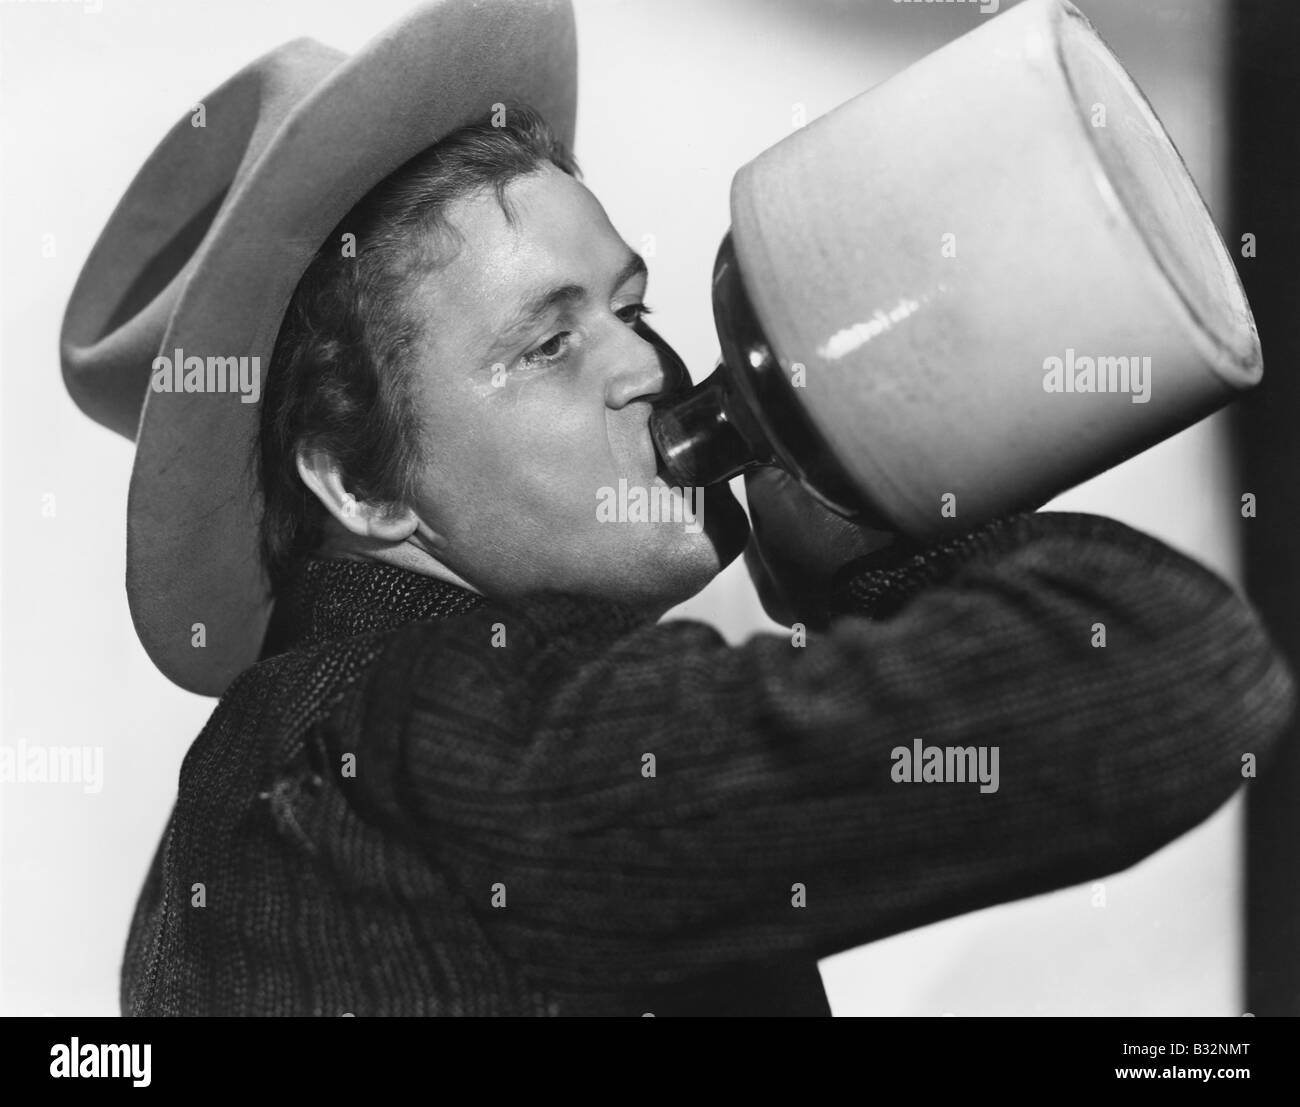 Portrait of man drinking from jug - Stock Image